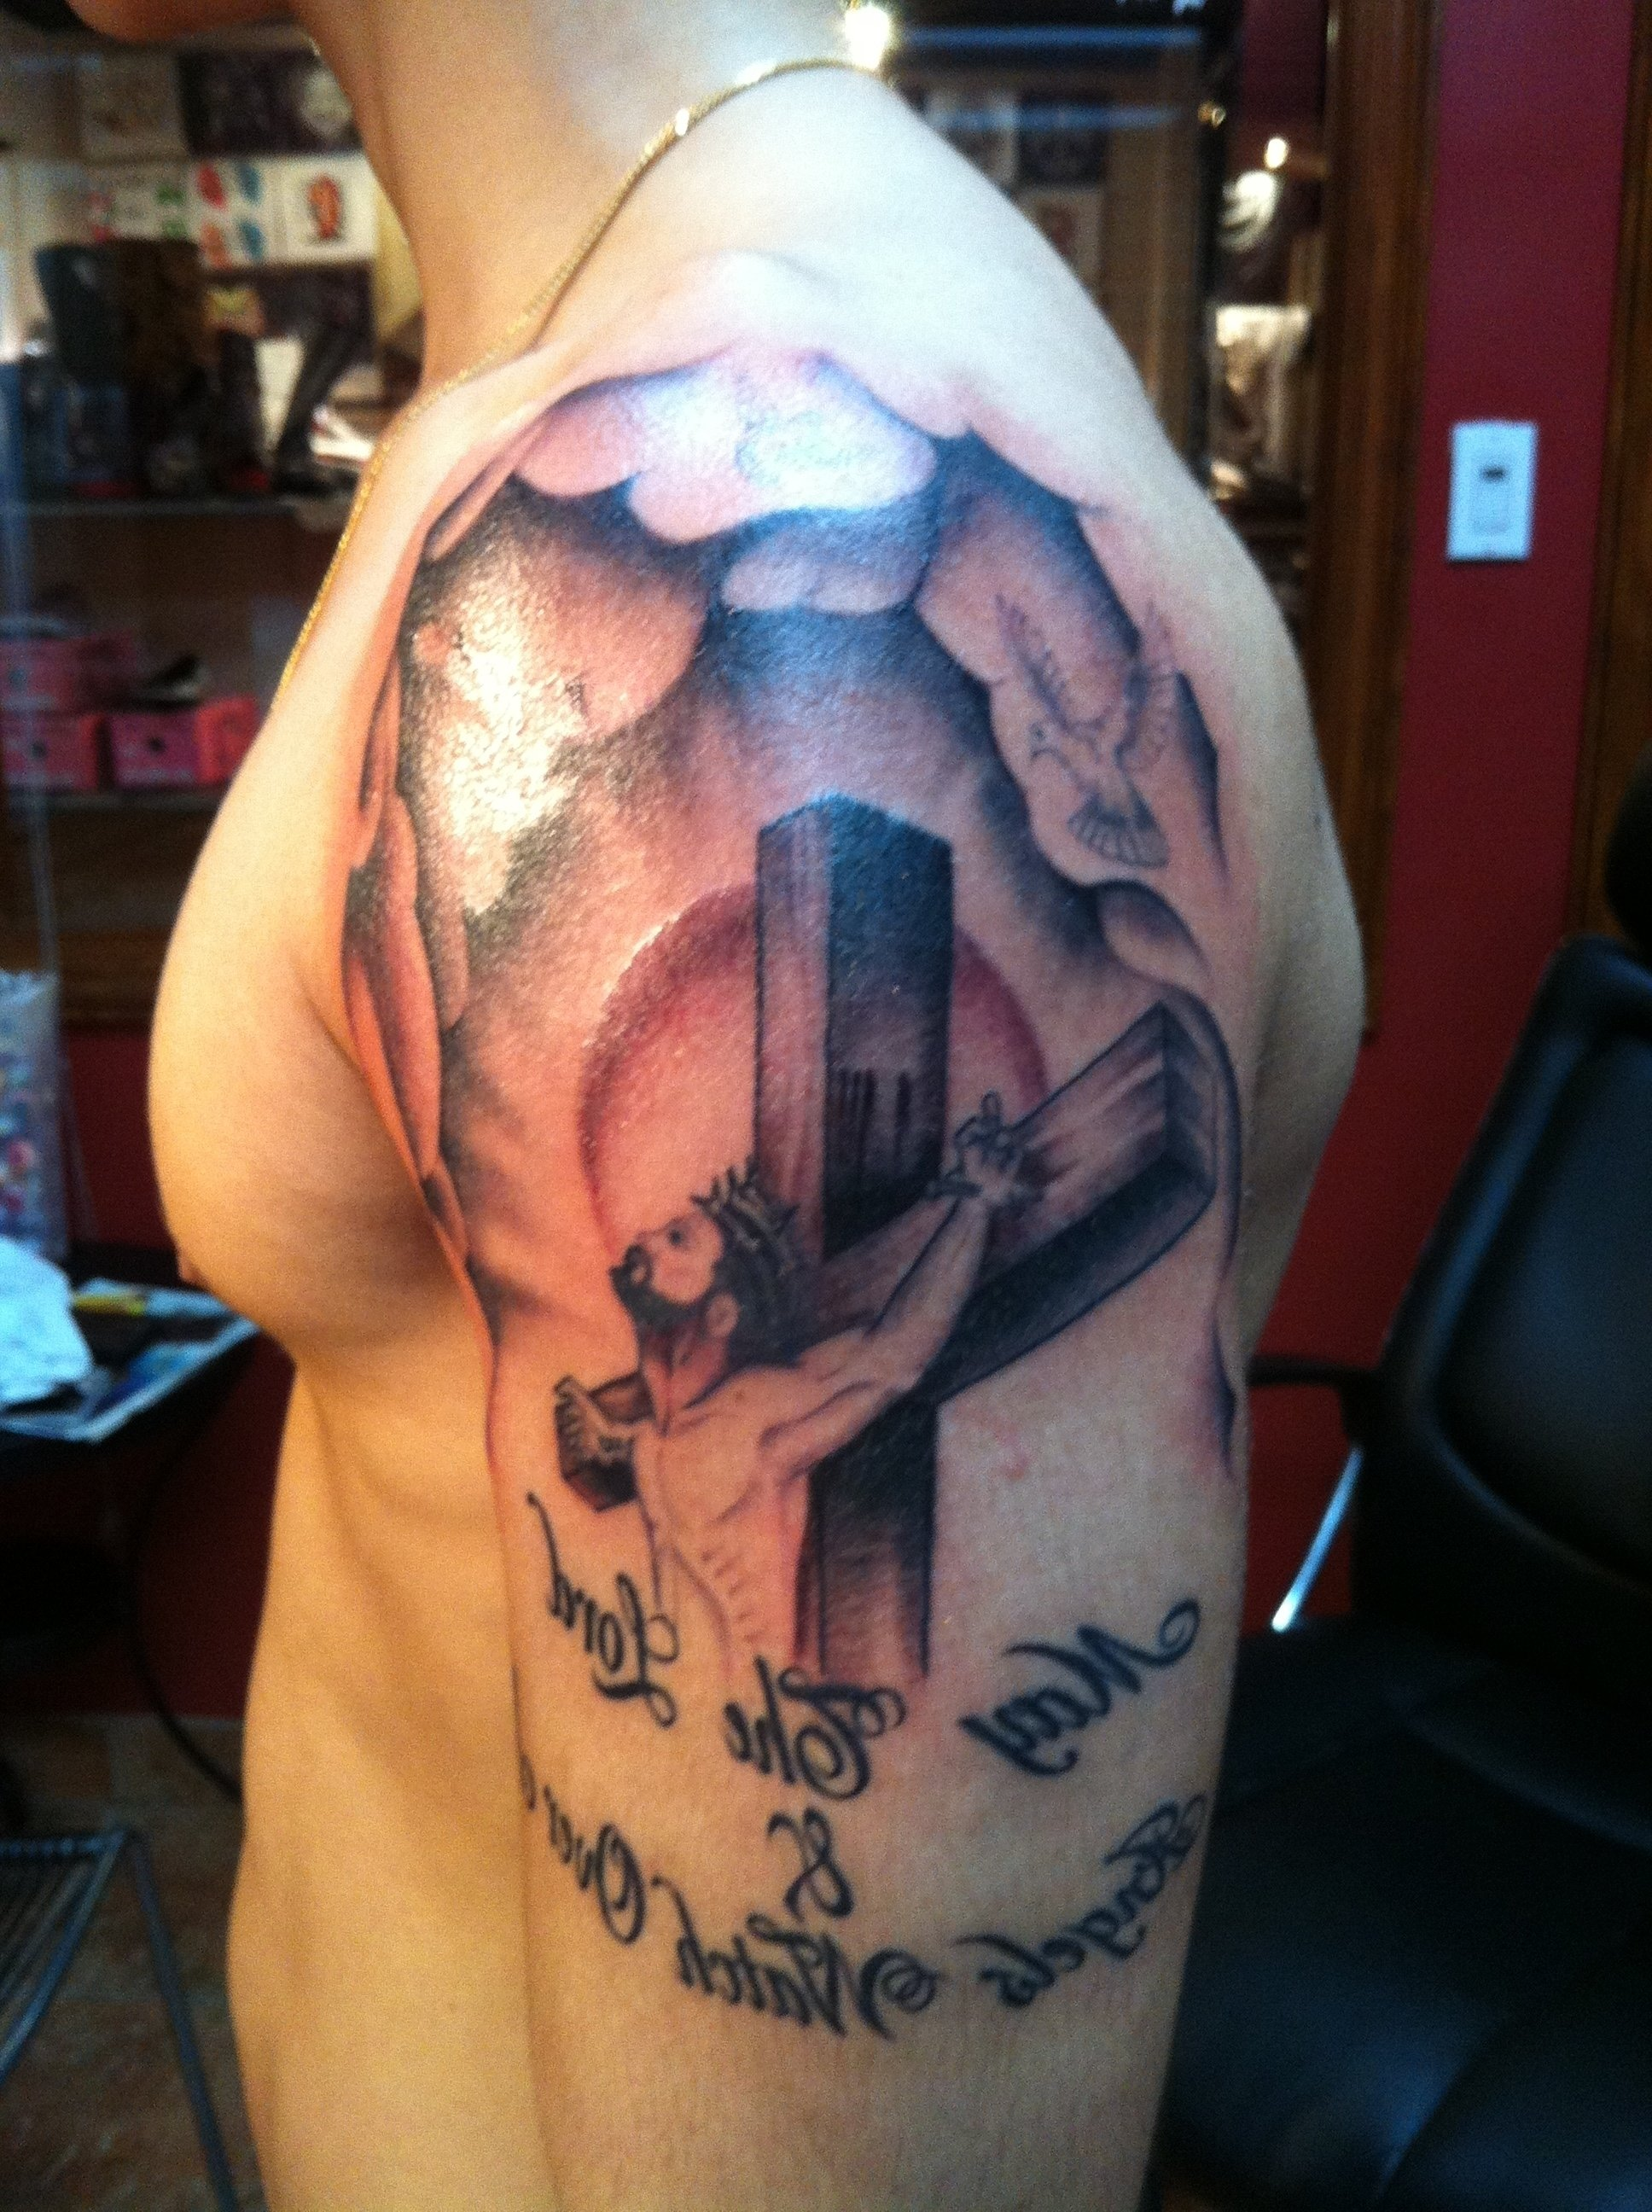 10 Pretty Christian Tattoo Ideas For Men christian tattoo ideas for men religious tattoos designs ideas and 2020